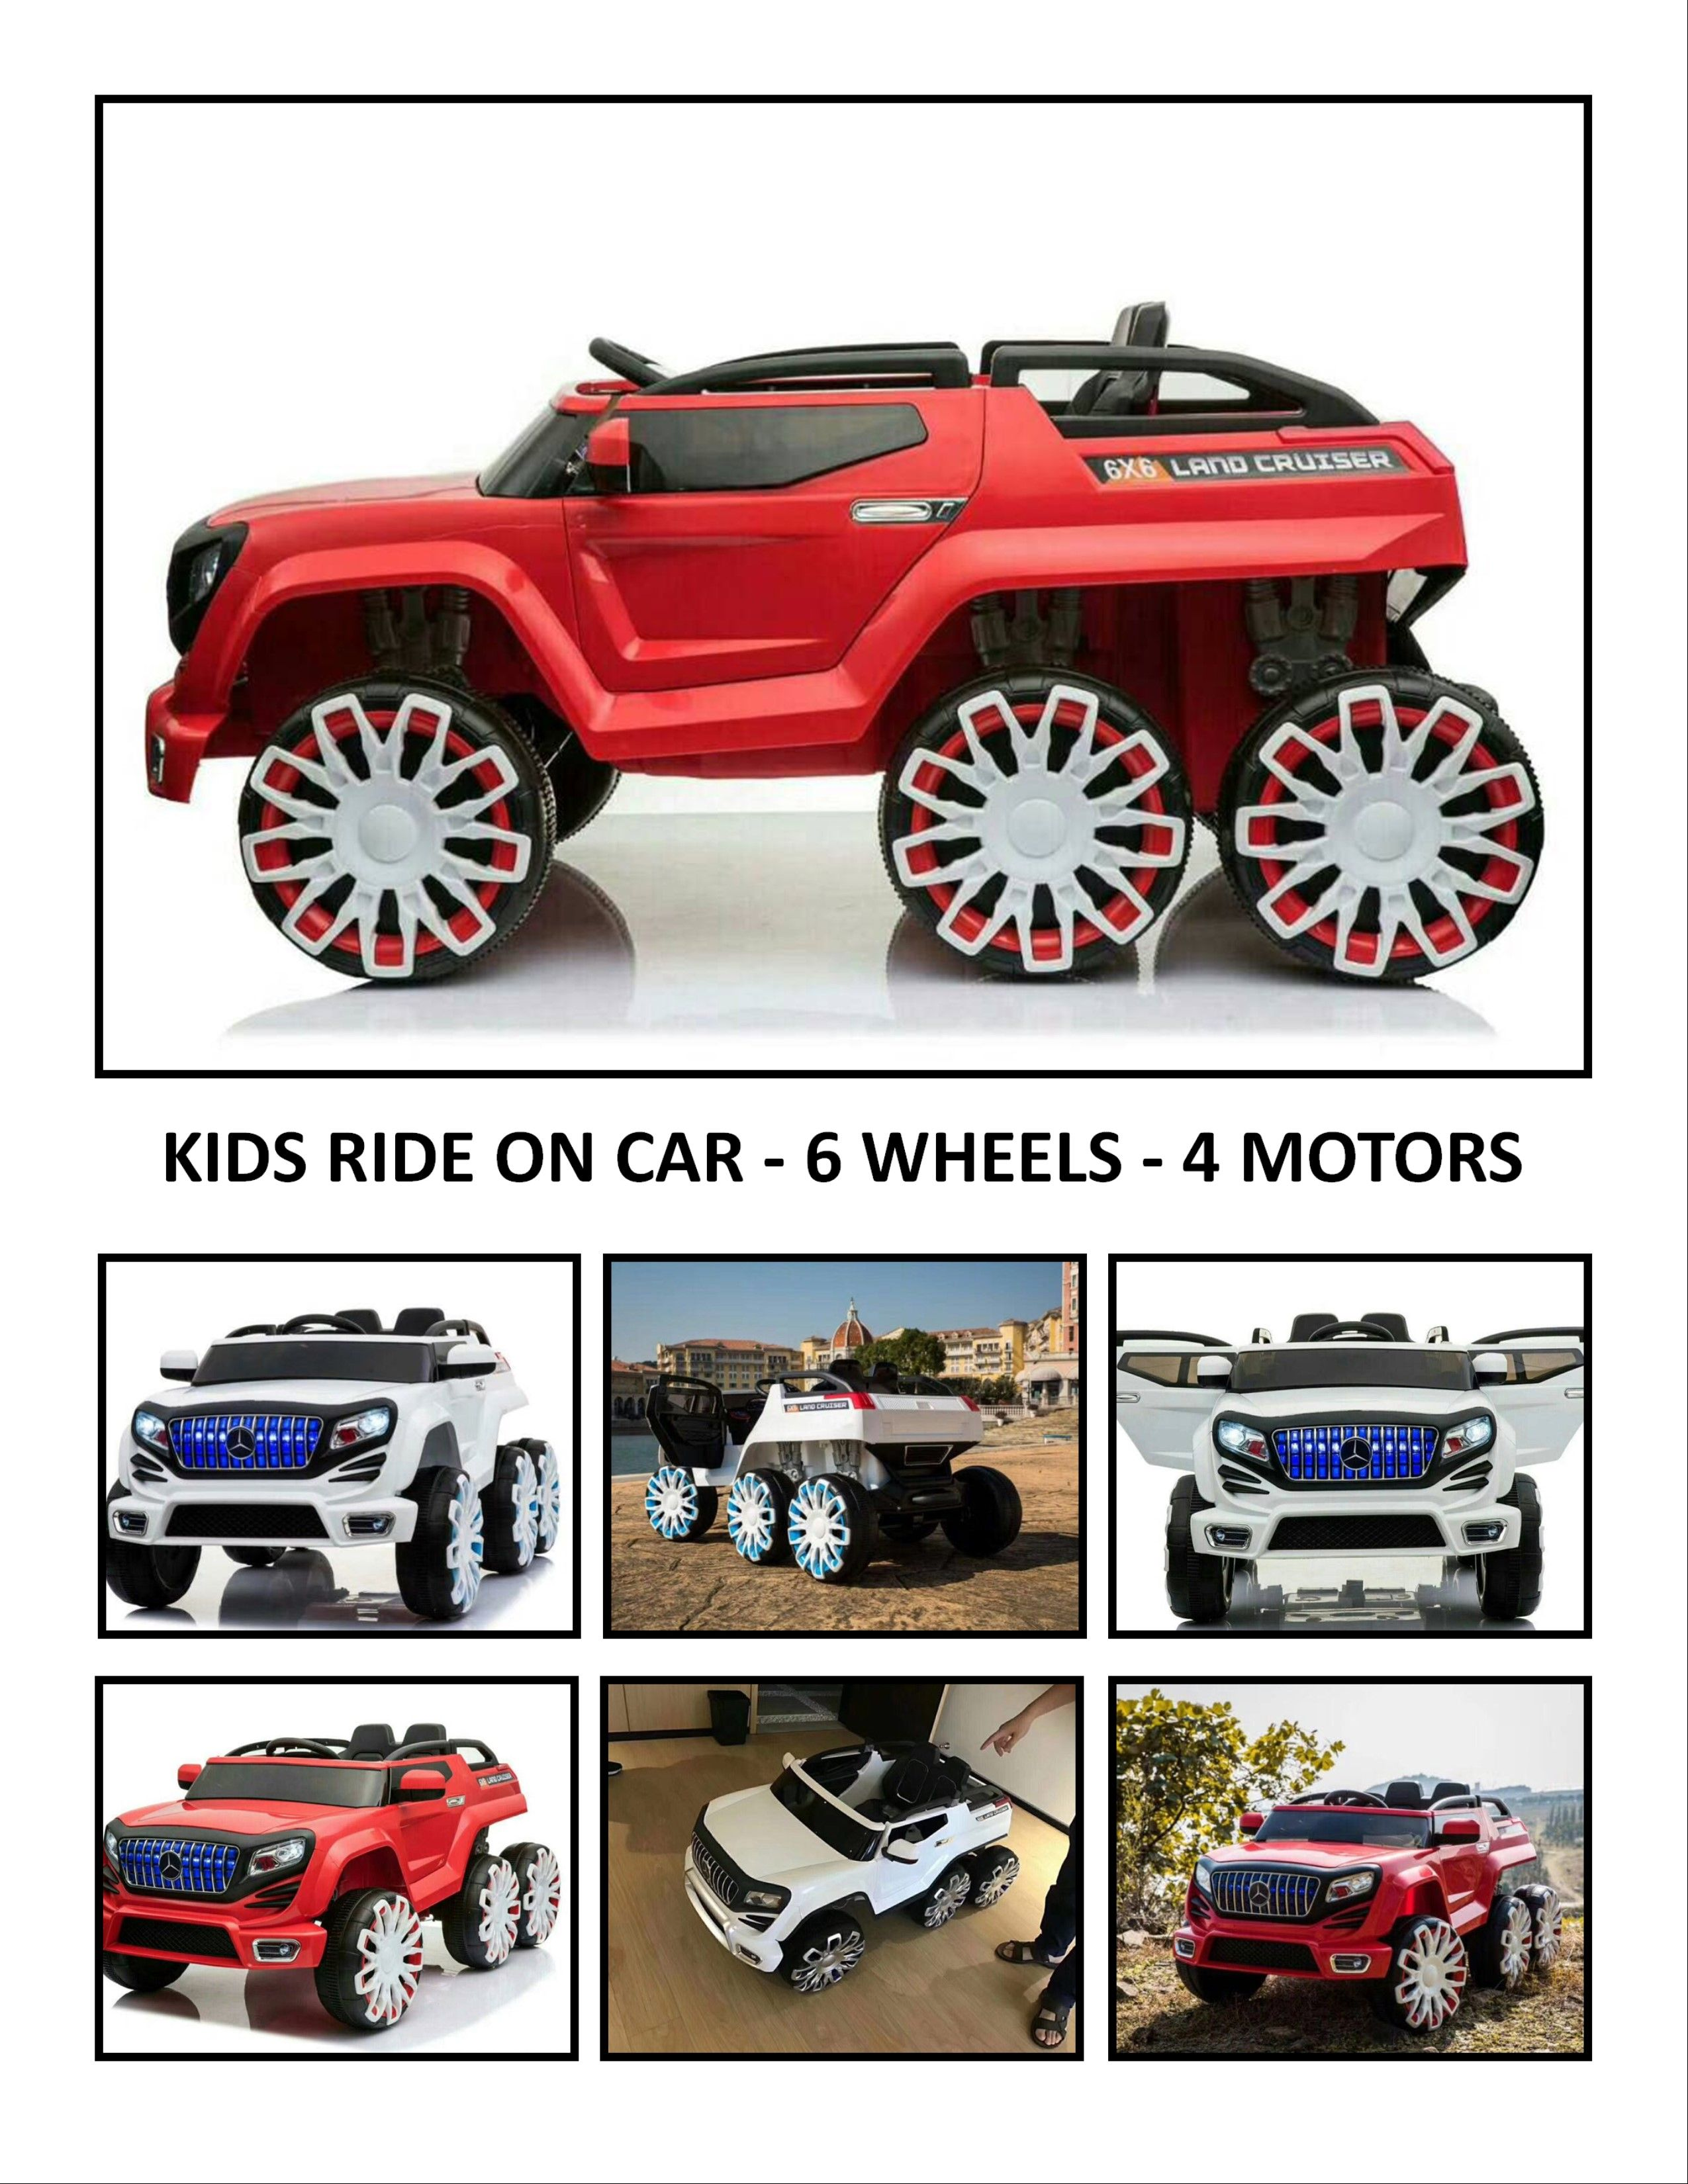 kids ride on car land cruiser a kids true beast 6 wheels